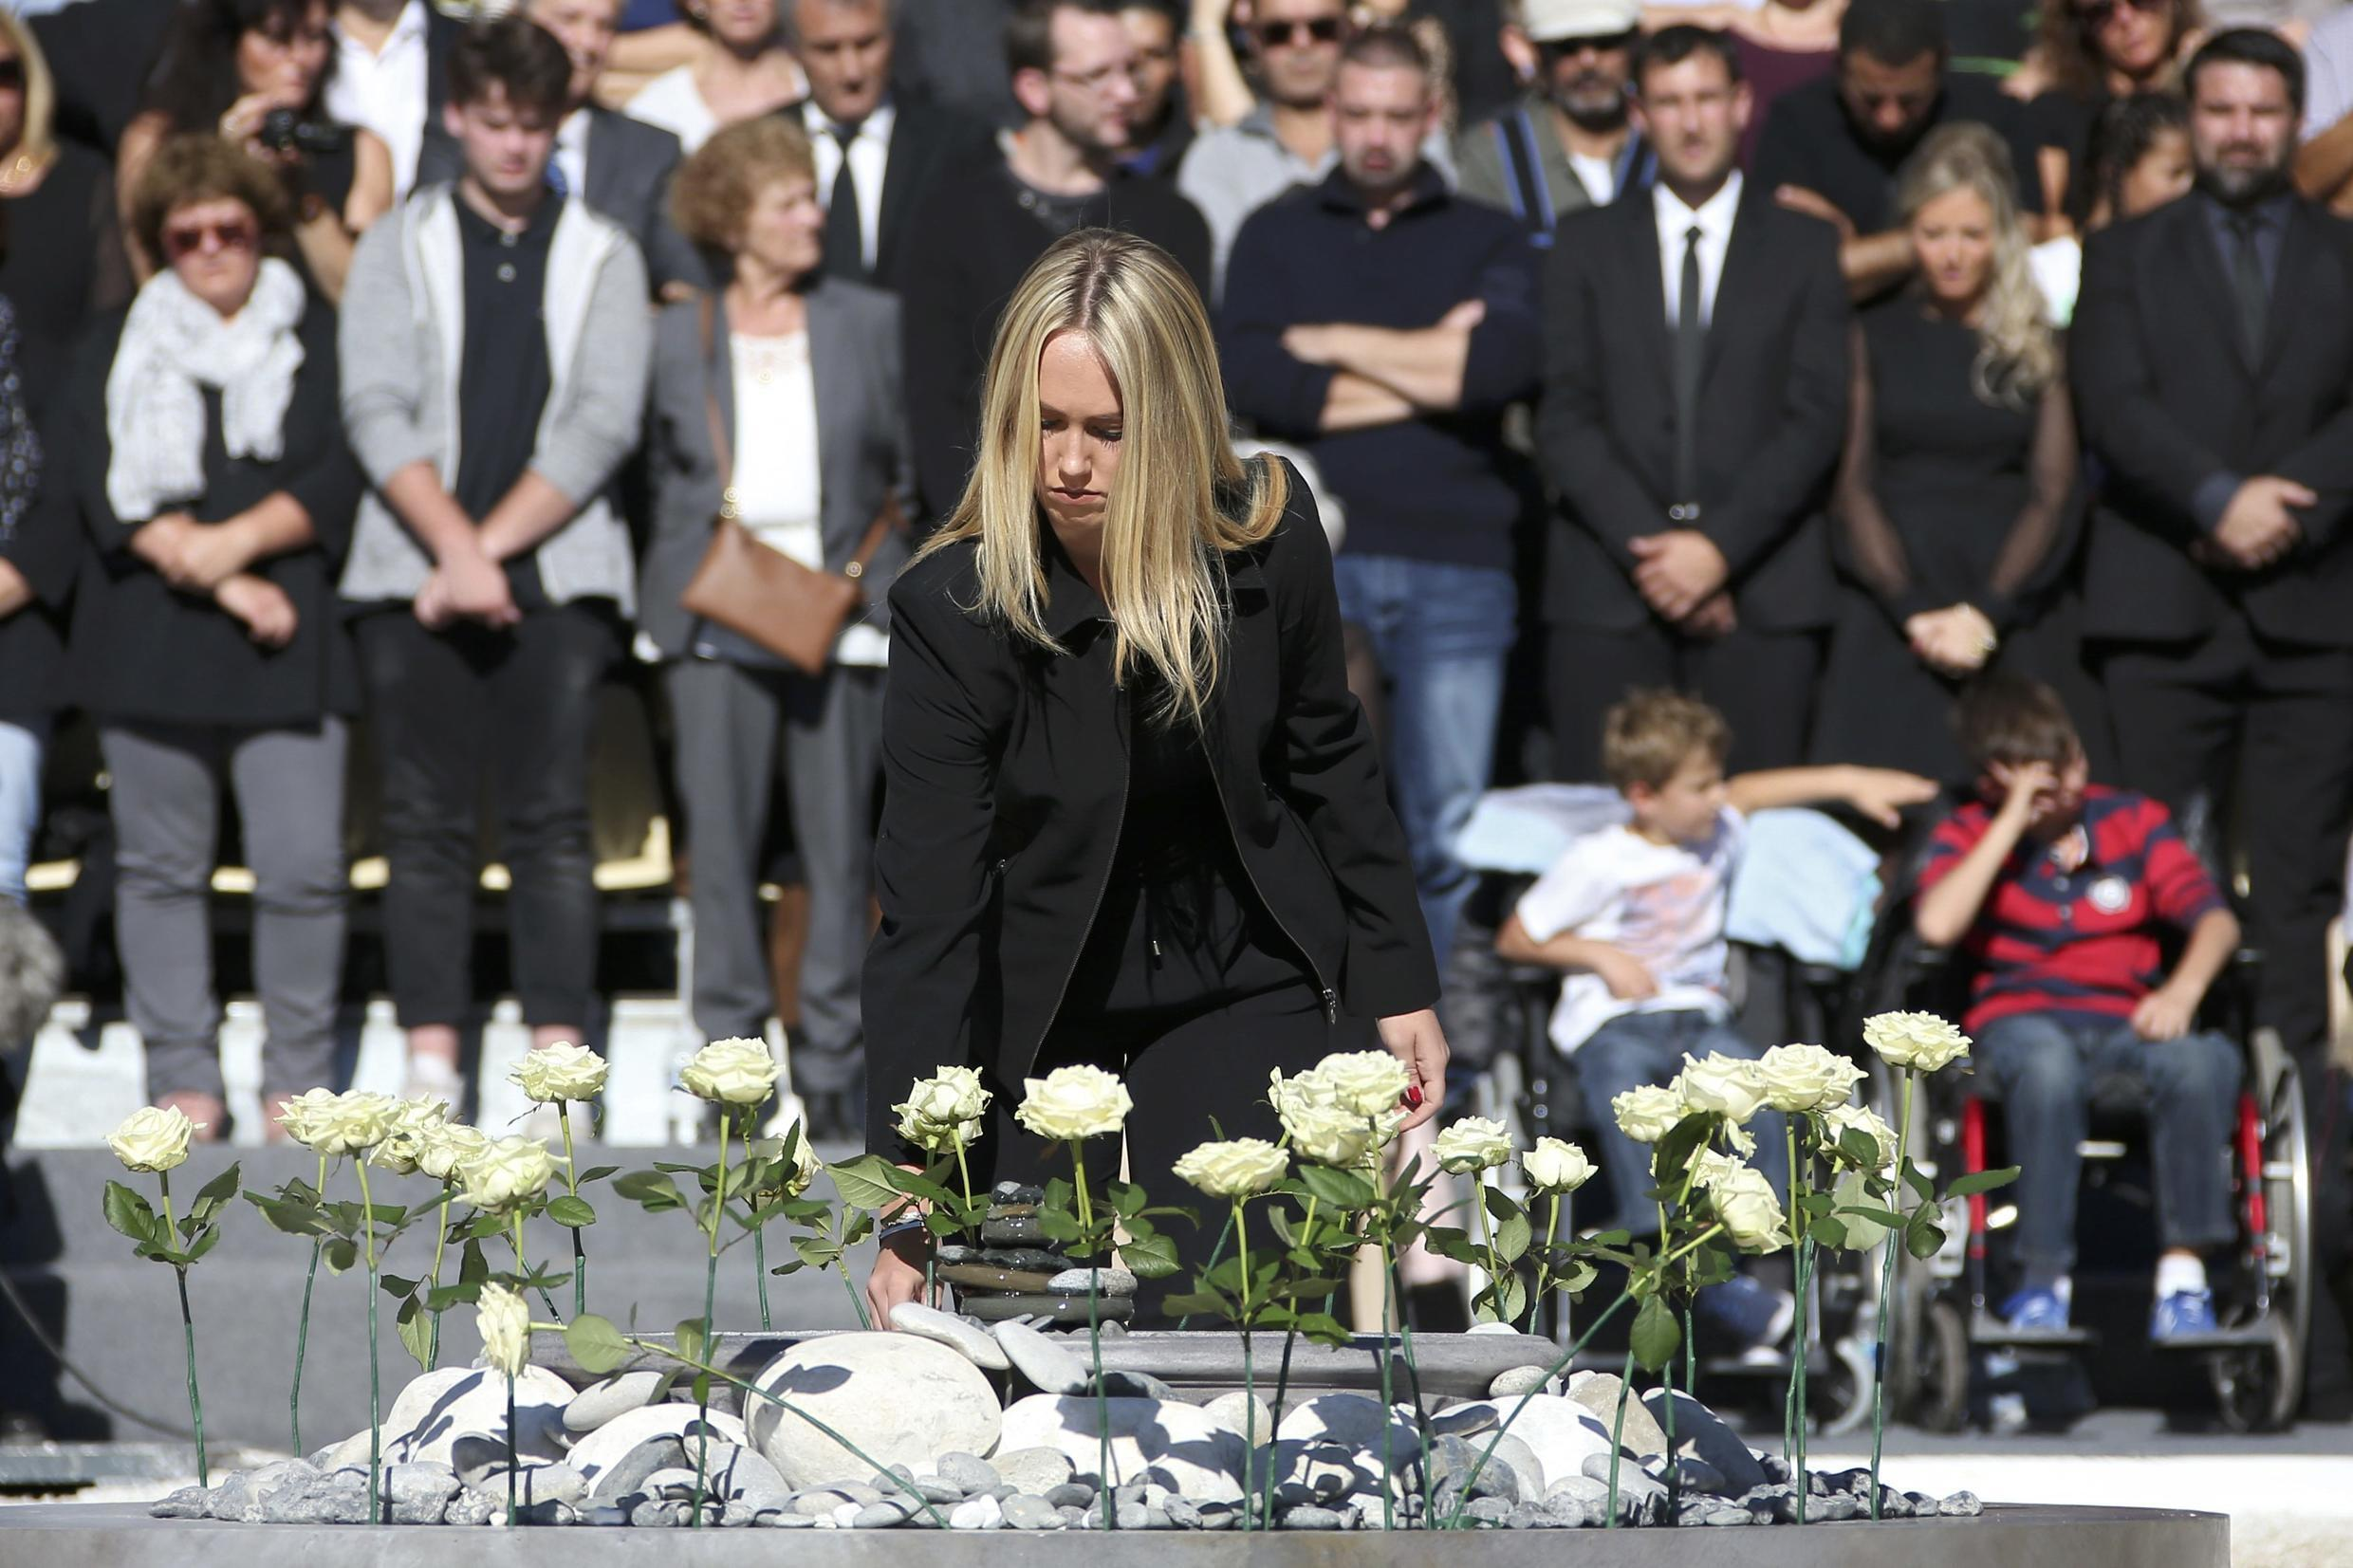 White roses, each representing one of the 86 victims, are put in place during the ceremony in tribute to the victims and the families of the fatal truck attack in Nice on July 14 2016